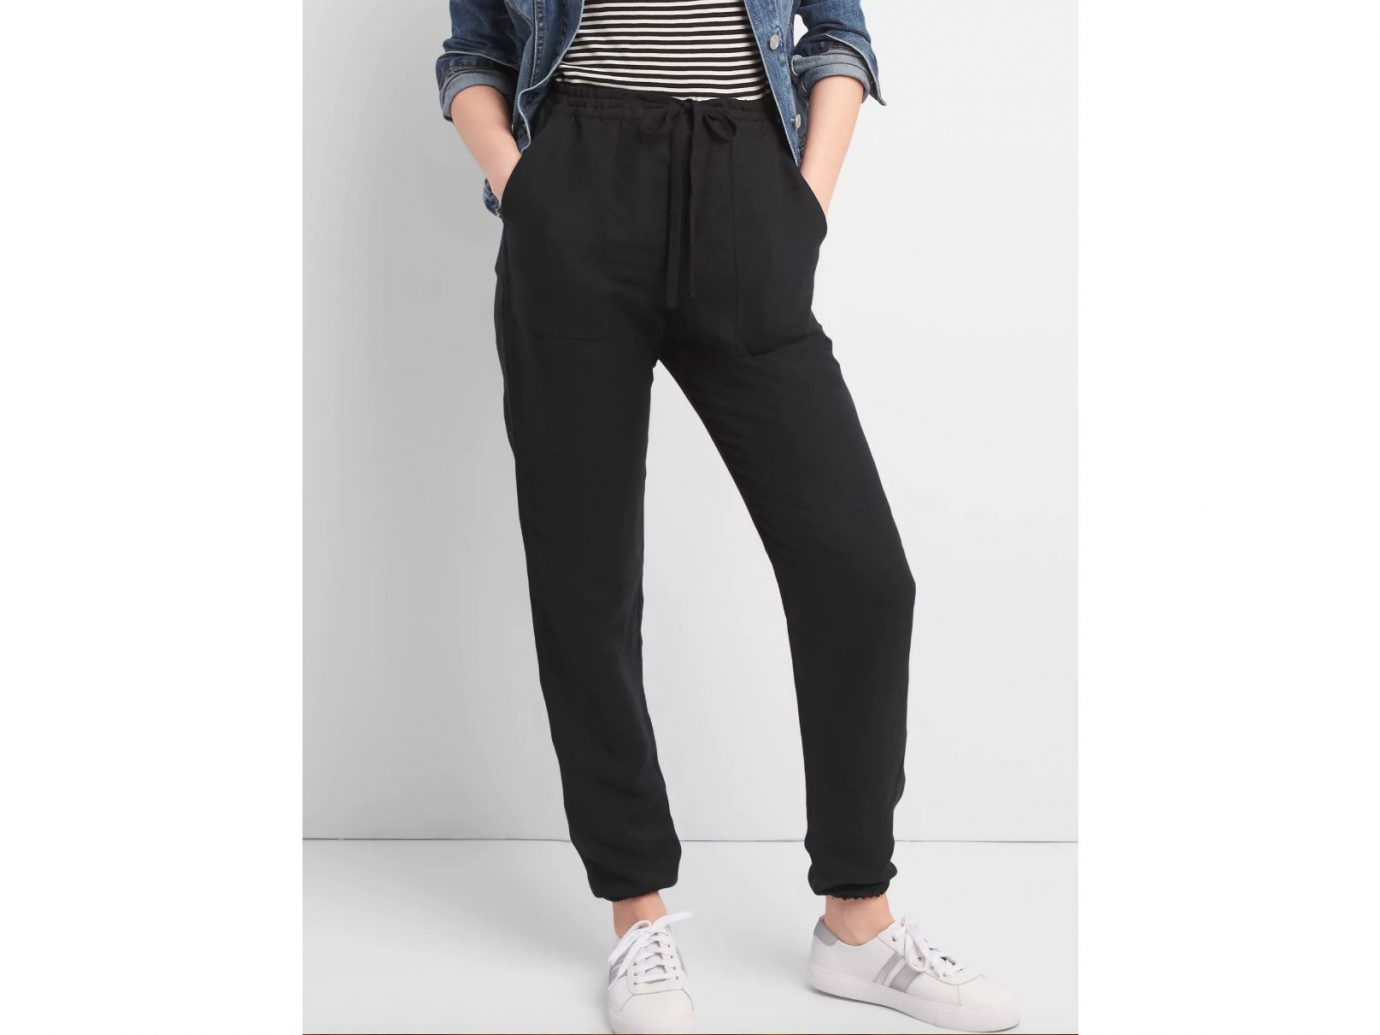 Morocco Packing Tips Style + Design Travel Shop clothing person standing waist trouser posing jeans joint wearing trousers active pants denim pocket abdomen suit shoe trunk dressed